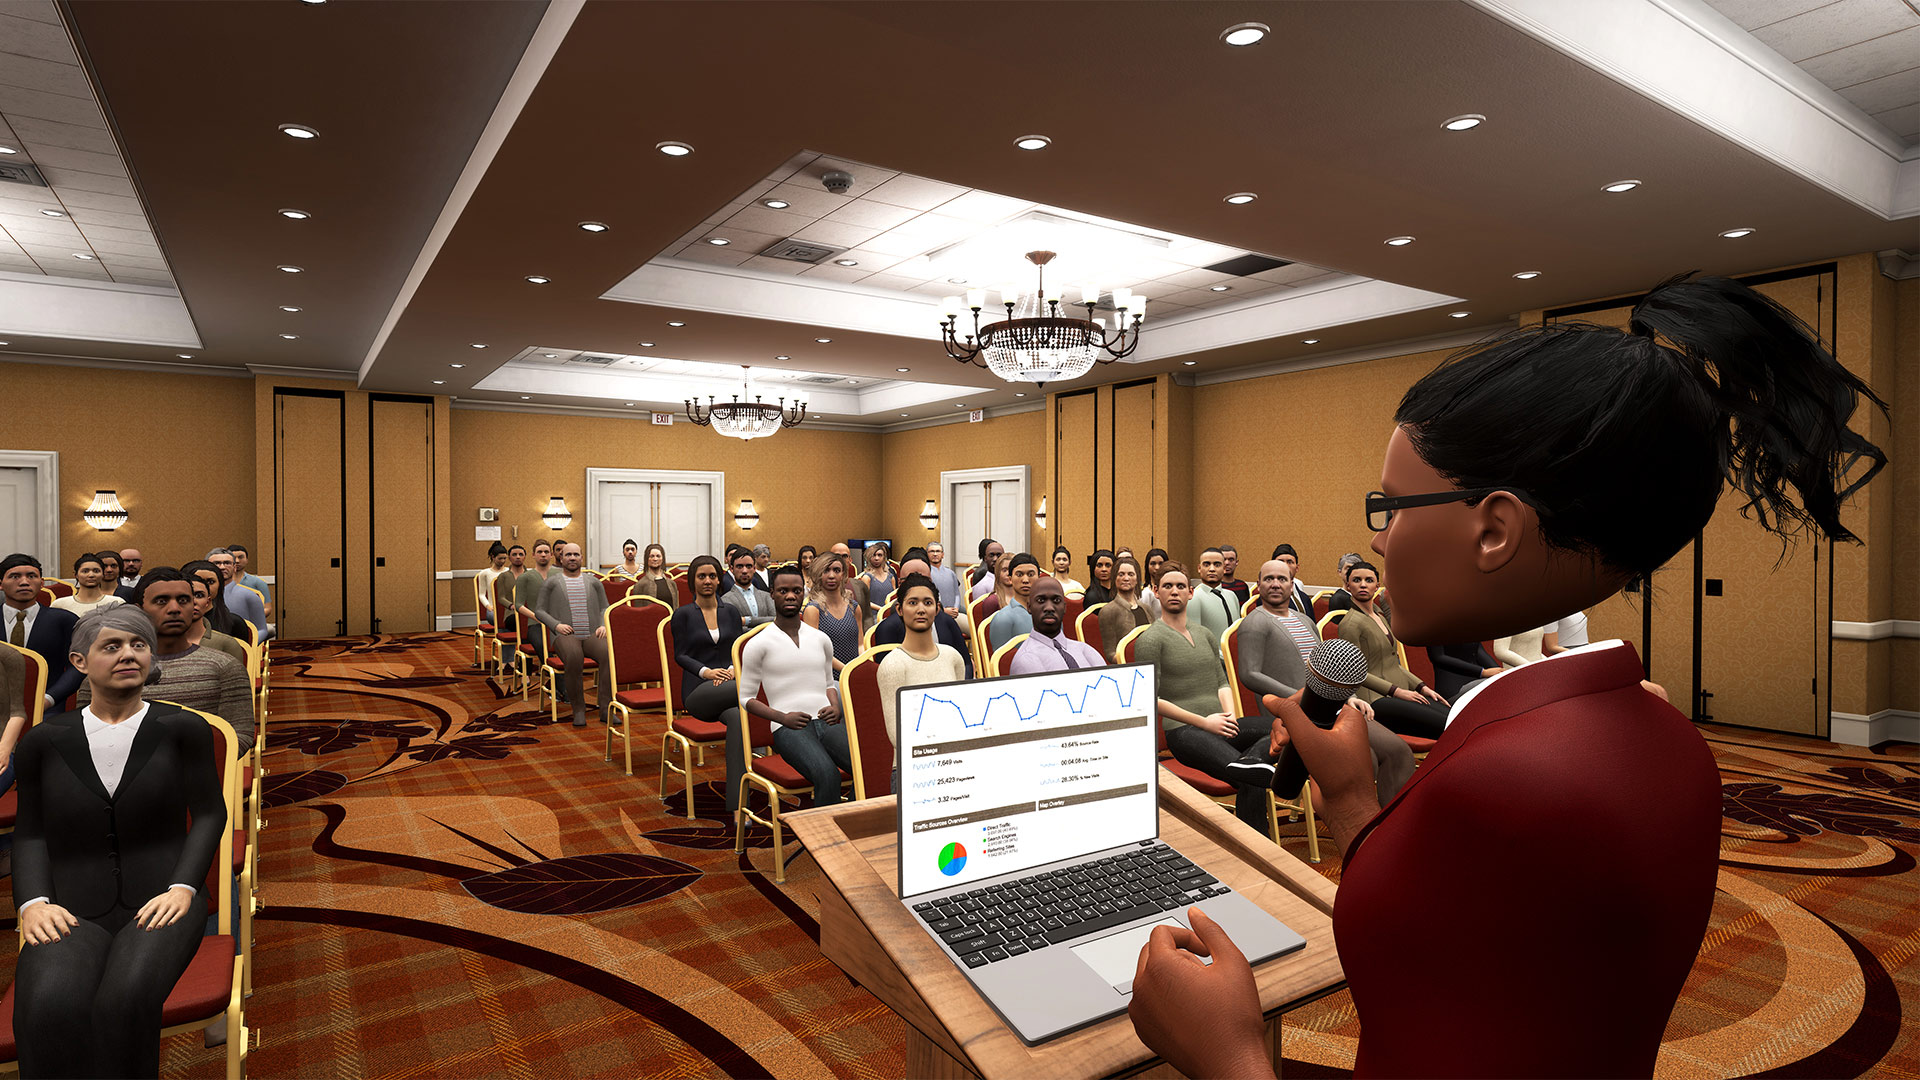 'Ovation' is a Powerful VR Public Speaking Sim Designed for Professional Training